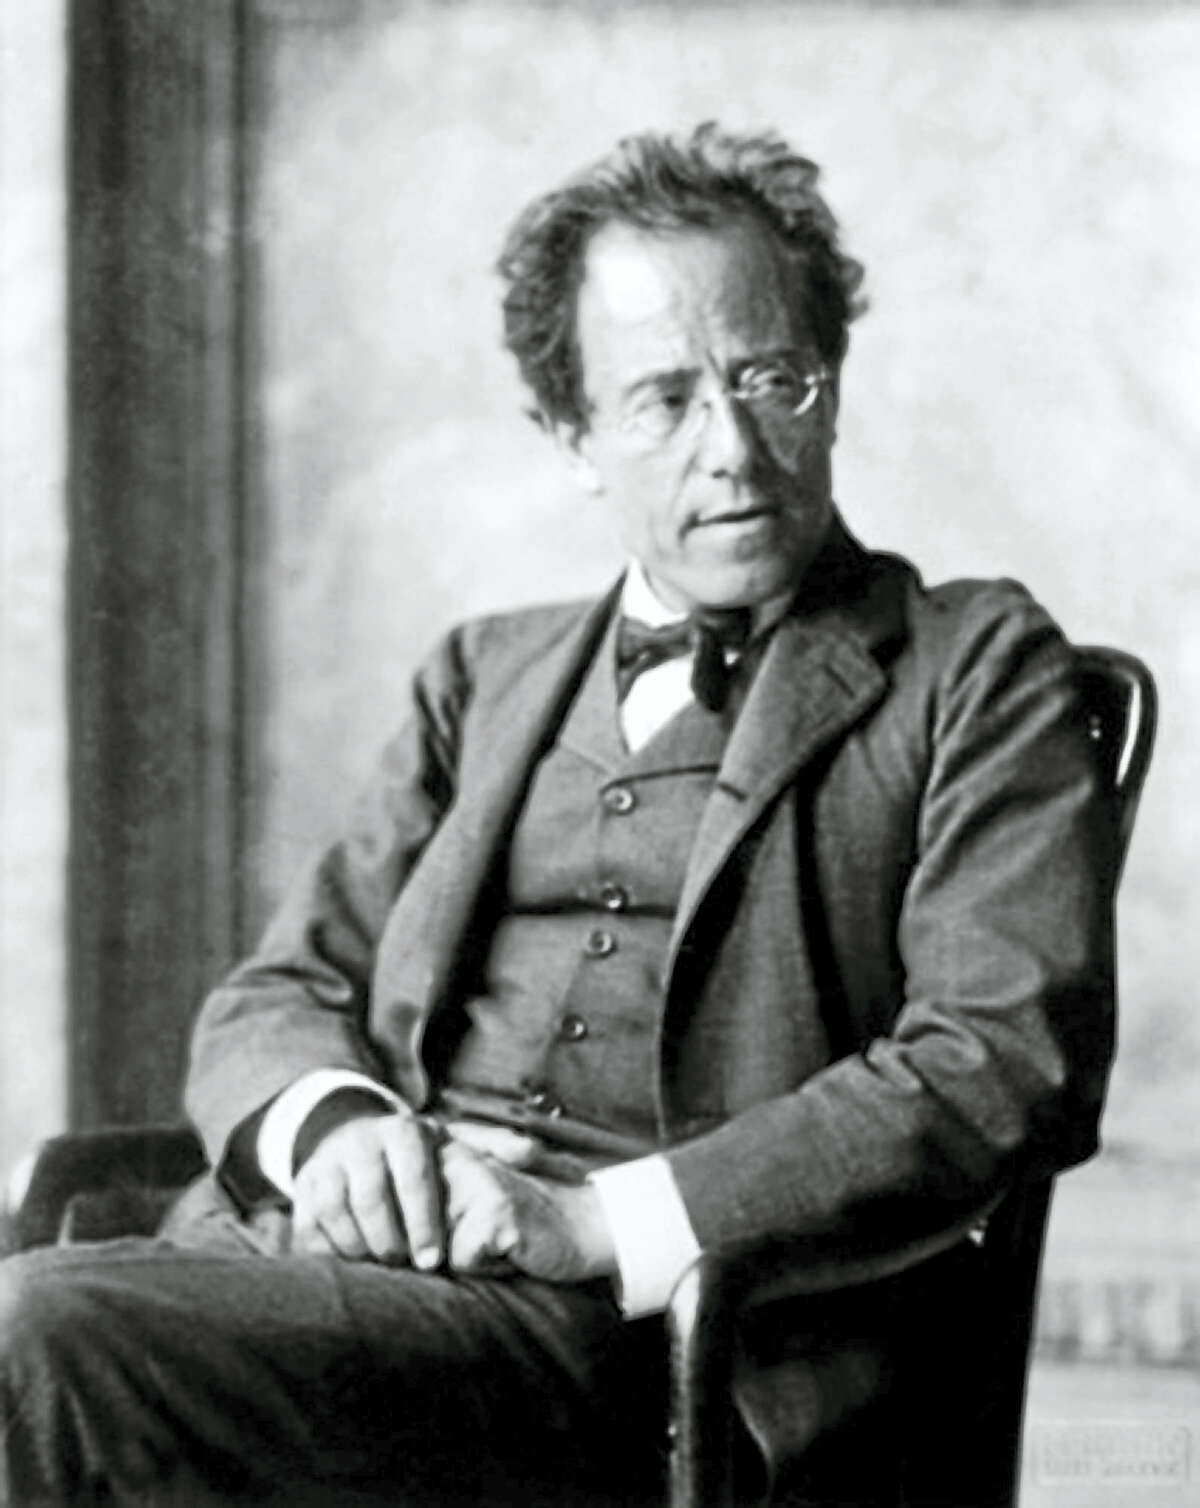 A 1907 portrait of Gustav Mahler, four years before his death at age 51.